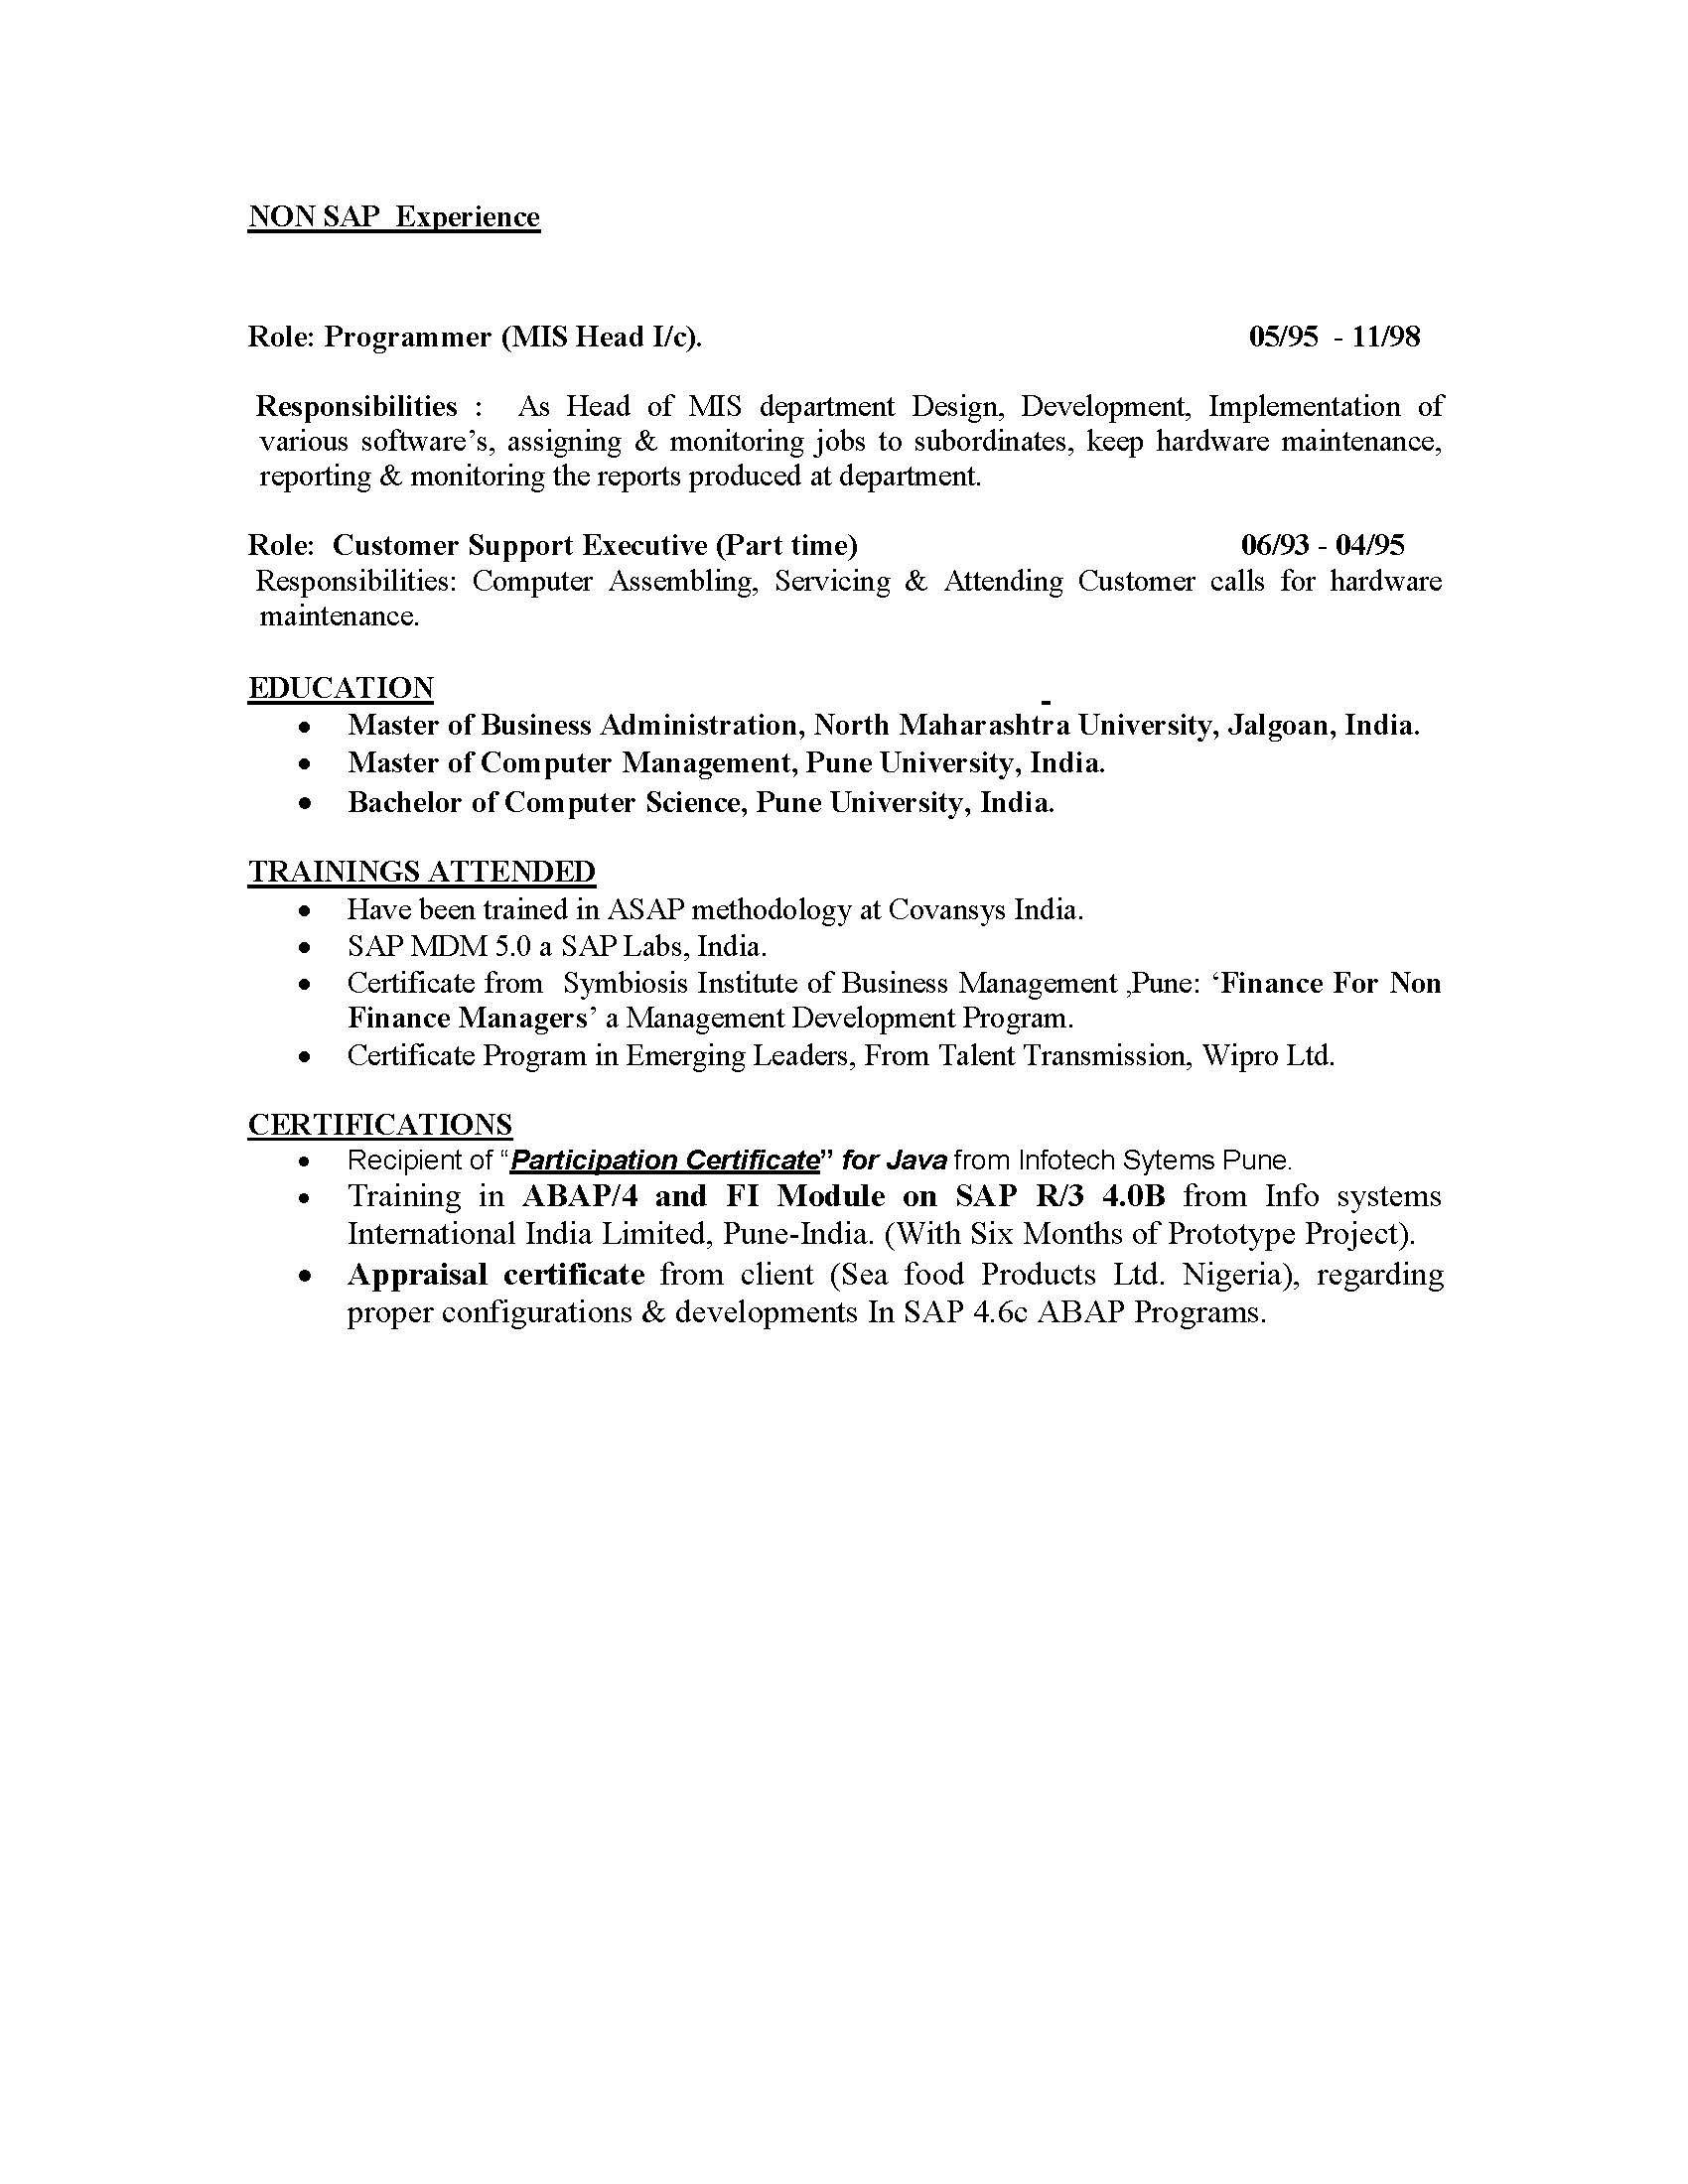 isu billing and invoice consultant sample resume - Sap Administration Sample Resume